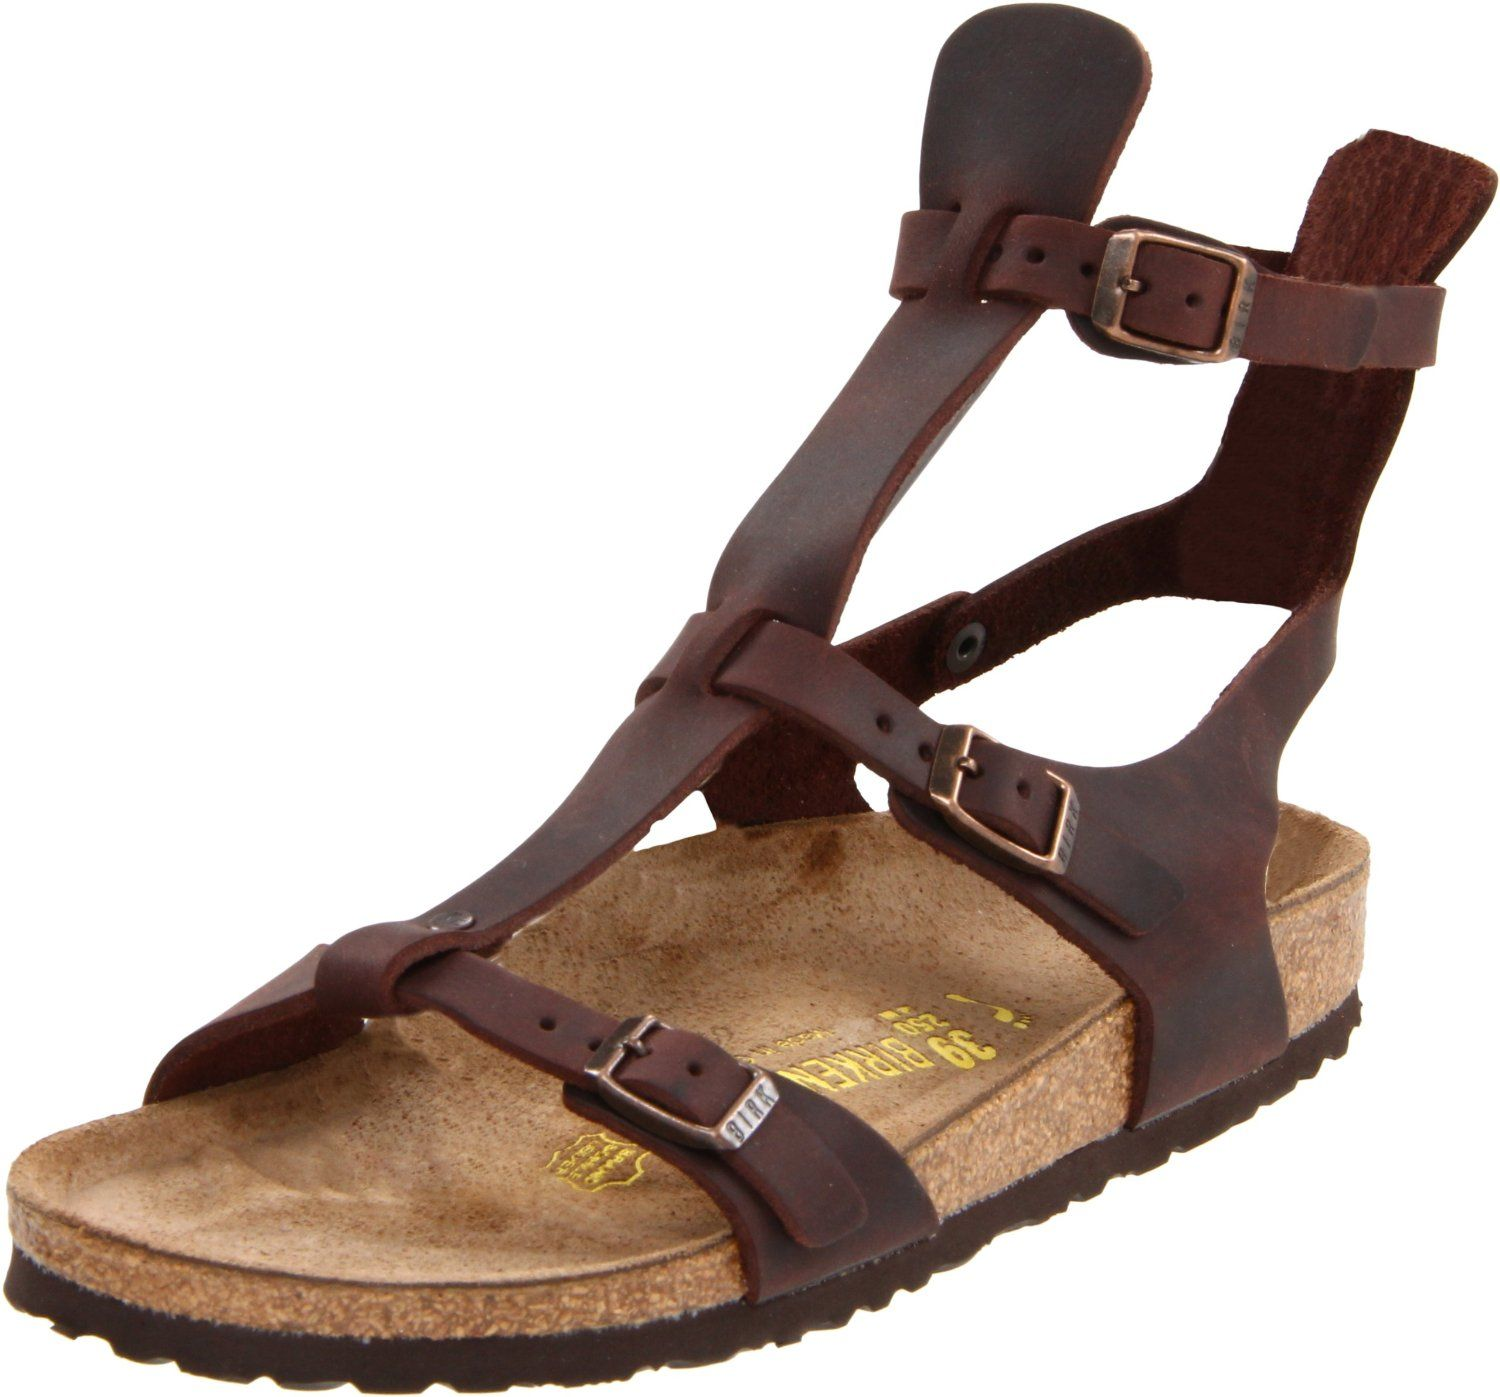 5673c1578b0 Amazon.com  Birkenstock Women s Chania Gladiator Sandal